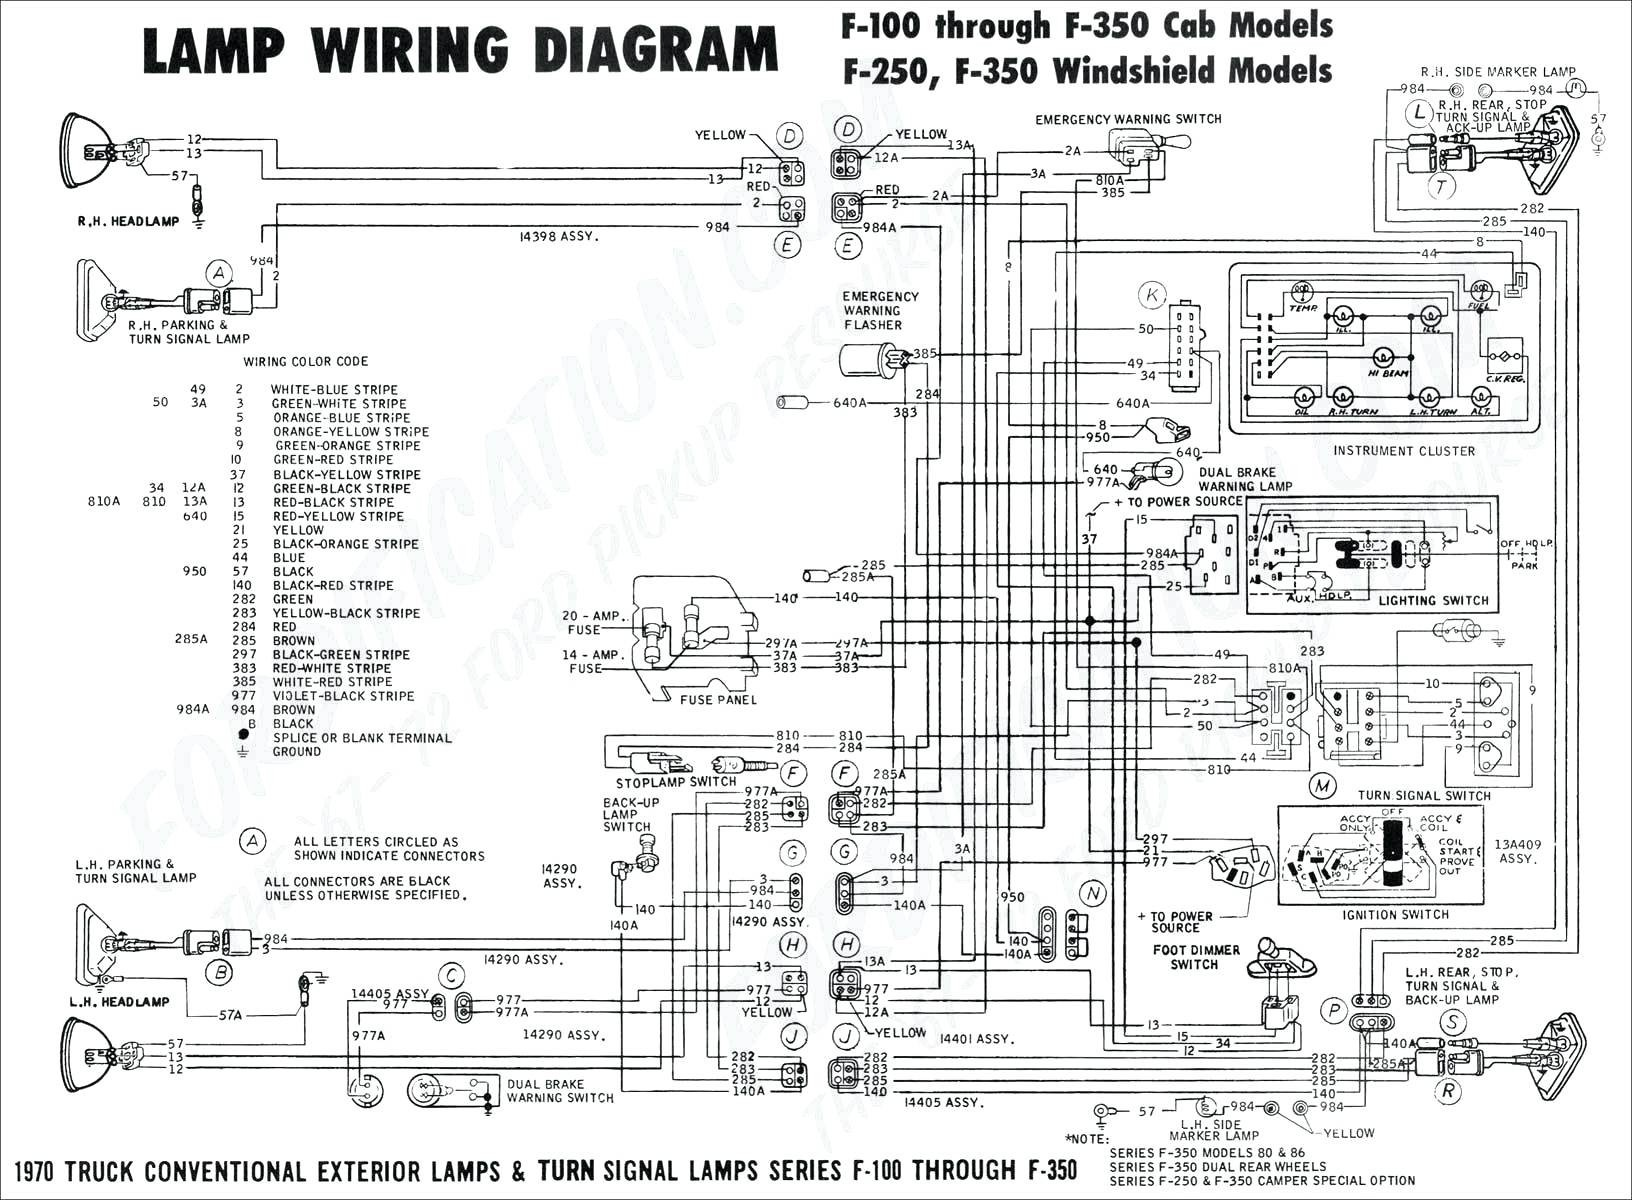 1999 Jetta Engine Diagram Alero 34 Engine Diagram Worksheet and Wiring Diagram • Of 1999 Jetta Engine Diagram